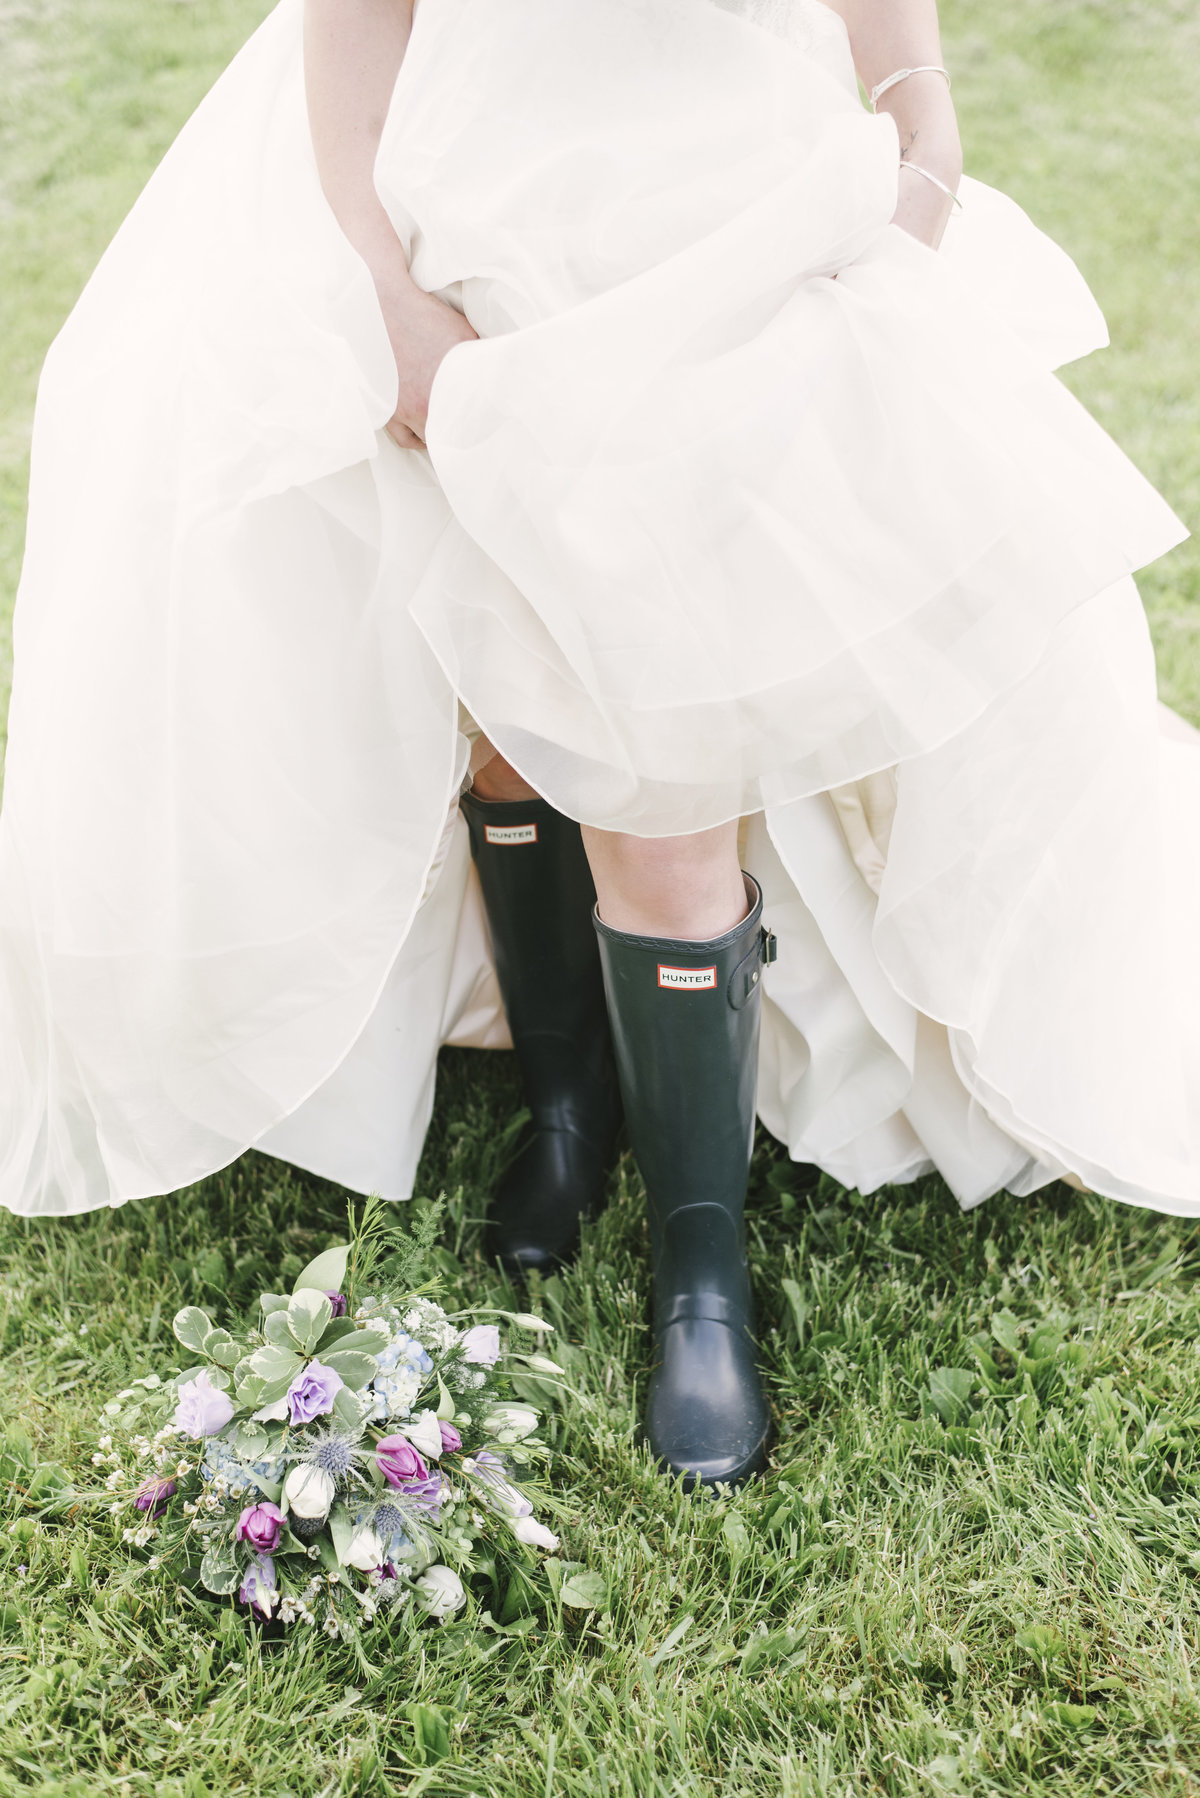 Monica-Relyea-Events-Alicia-King-Photography-Globe-Hill-Ronnybrook-Farm-Hudson-Valley-wedding-shoot-inspiration20